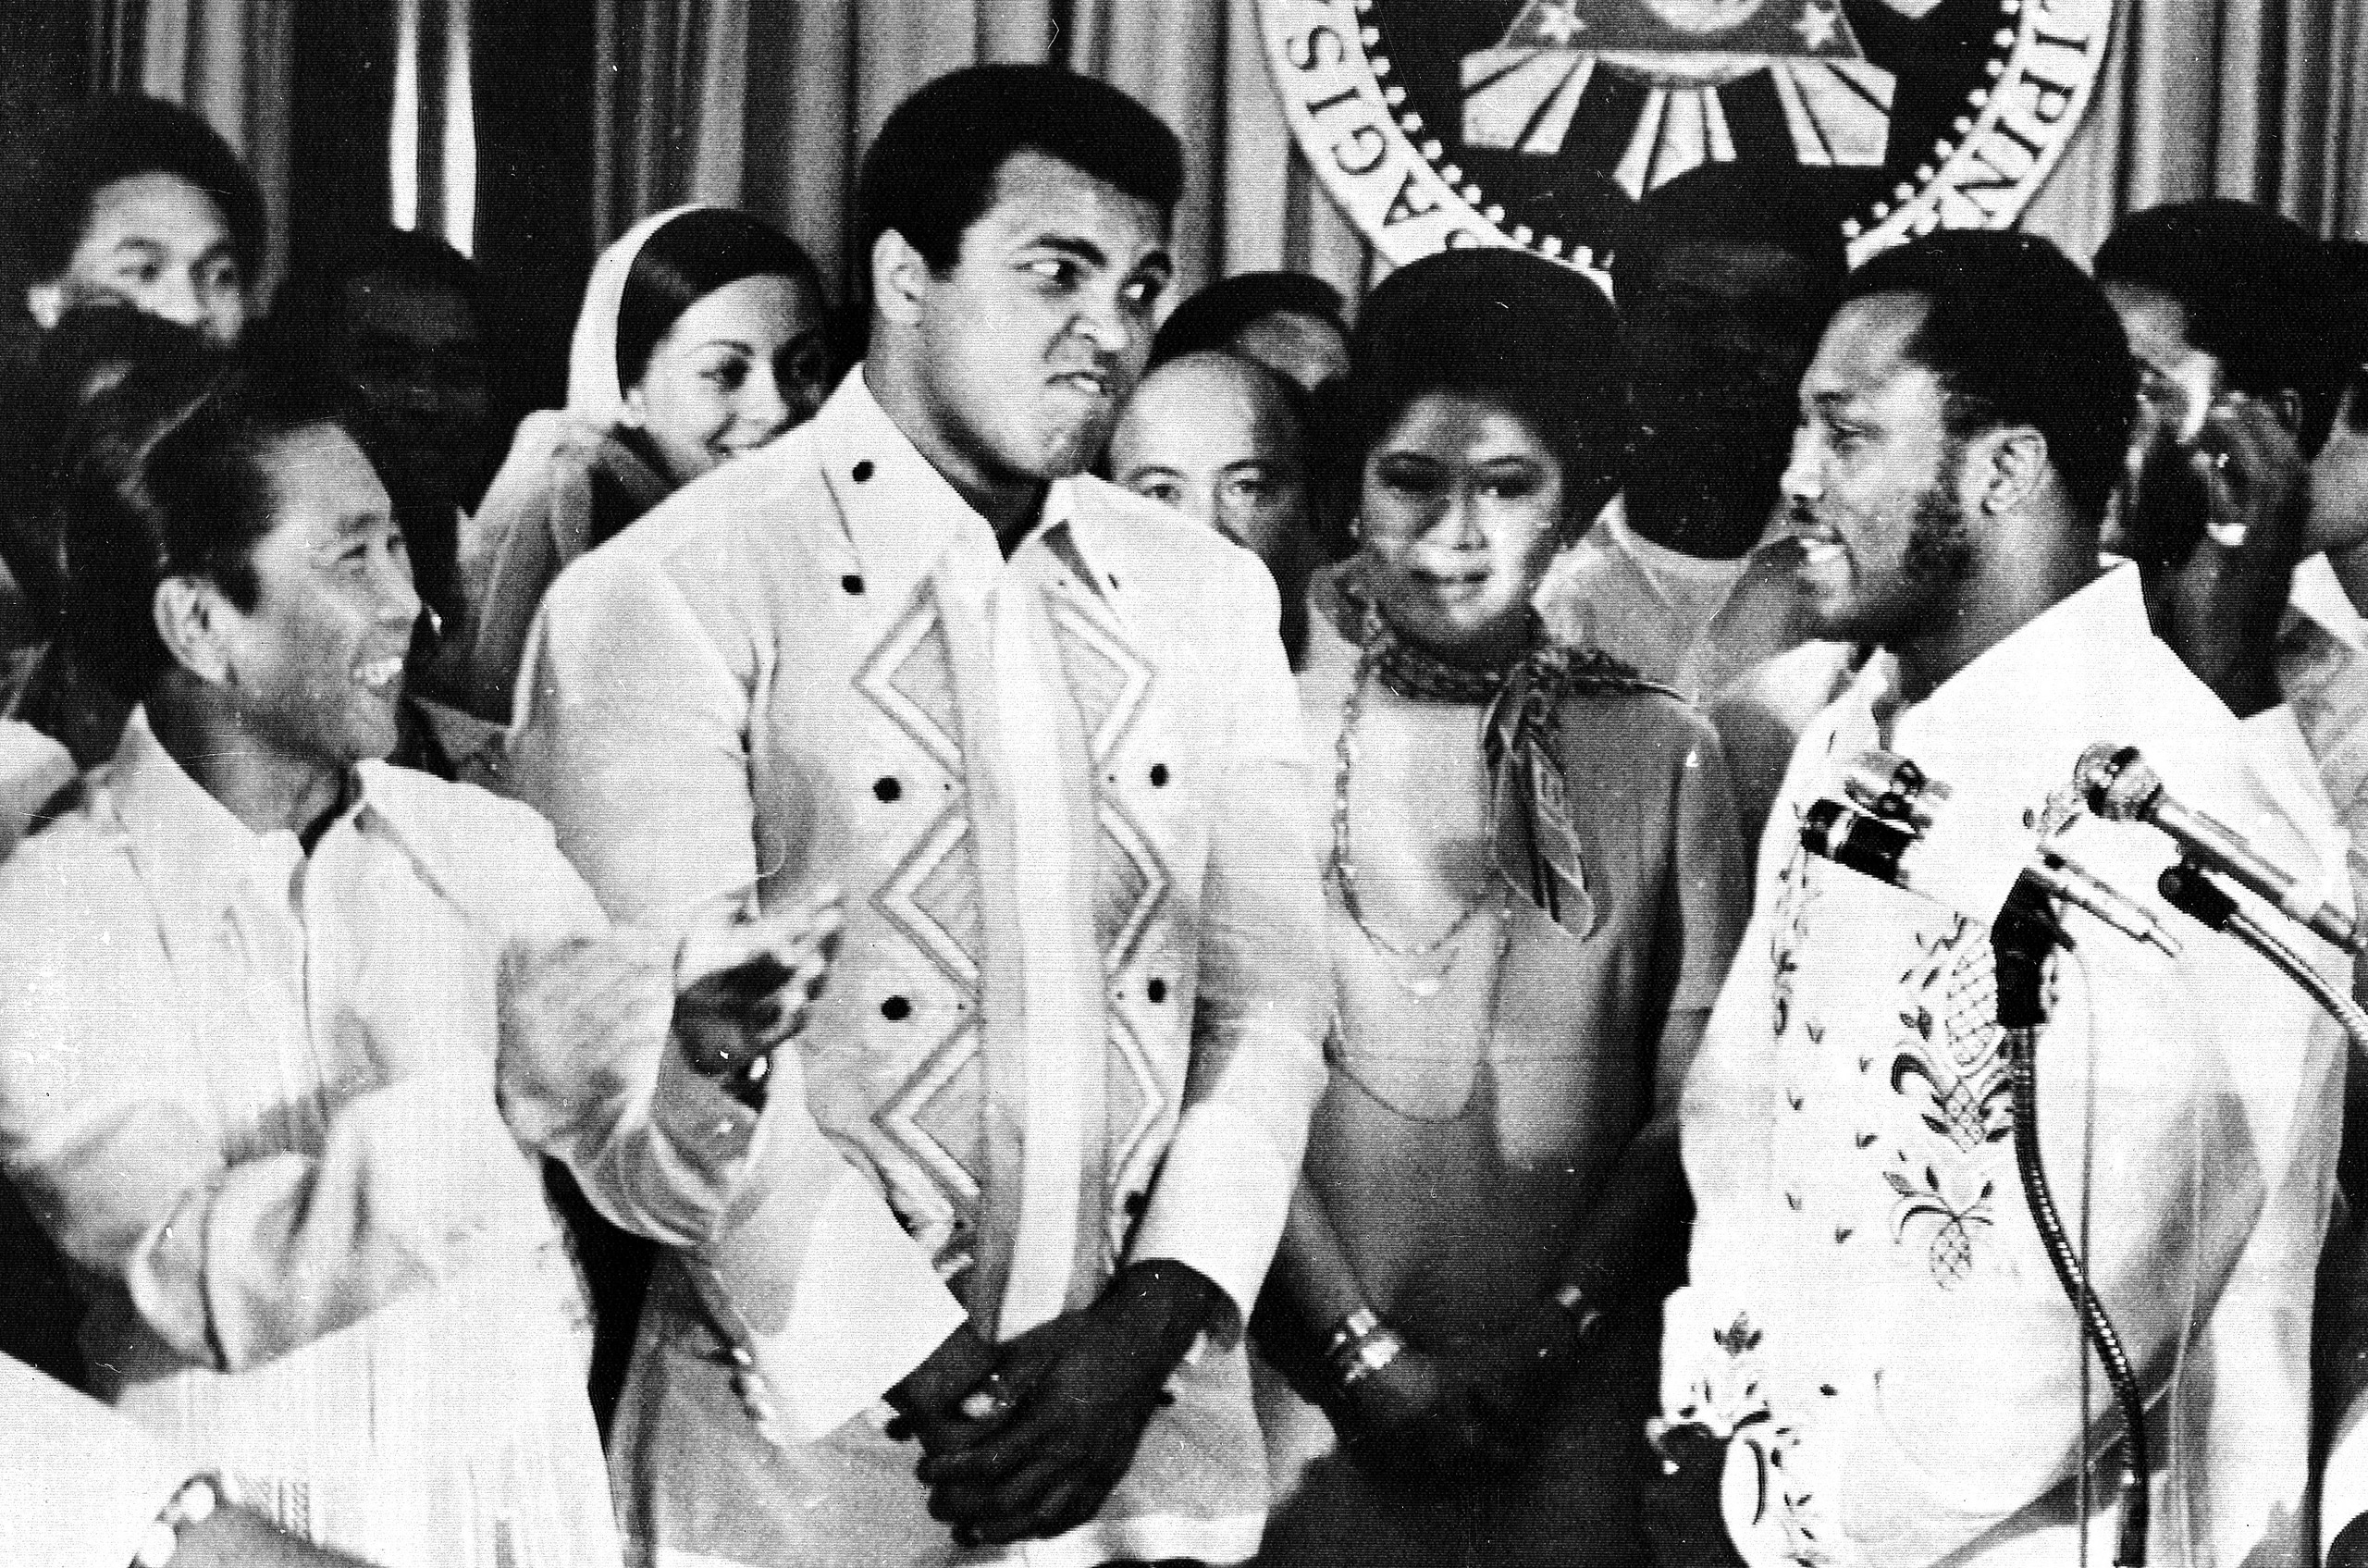 Philippines President Ferdinand Marcos, left, applauds as challenger Joe Frazier, right, makes some remarks about world champion Muhammad Ali, second from left, during their call on Marcos at the Malacanang Palace in Manila, on Sept. 18, 1975.  Between the two fighters is Marco's wife Imelda.